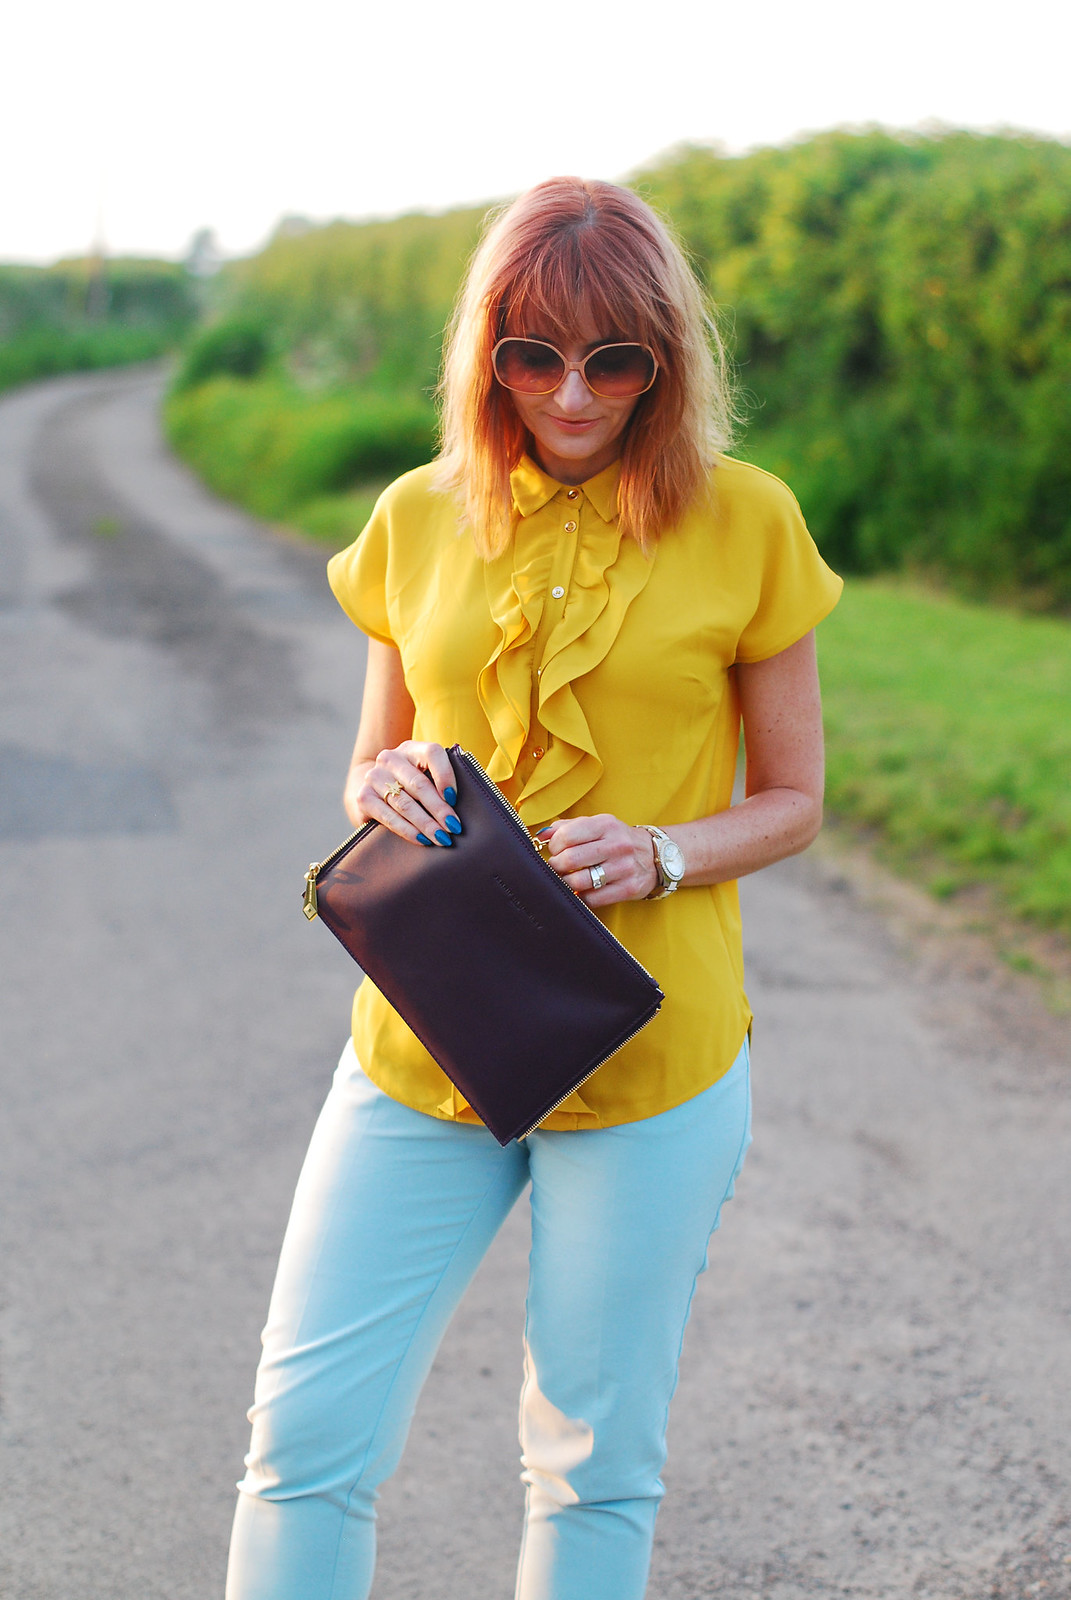 Summer brights: Ruffled yellow blouse, mint trousers, Jennifer Hamley Model KT Workbag clutch, oversized 70s sunglasses | Not Dressed As Lamb